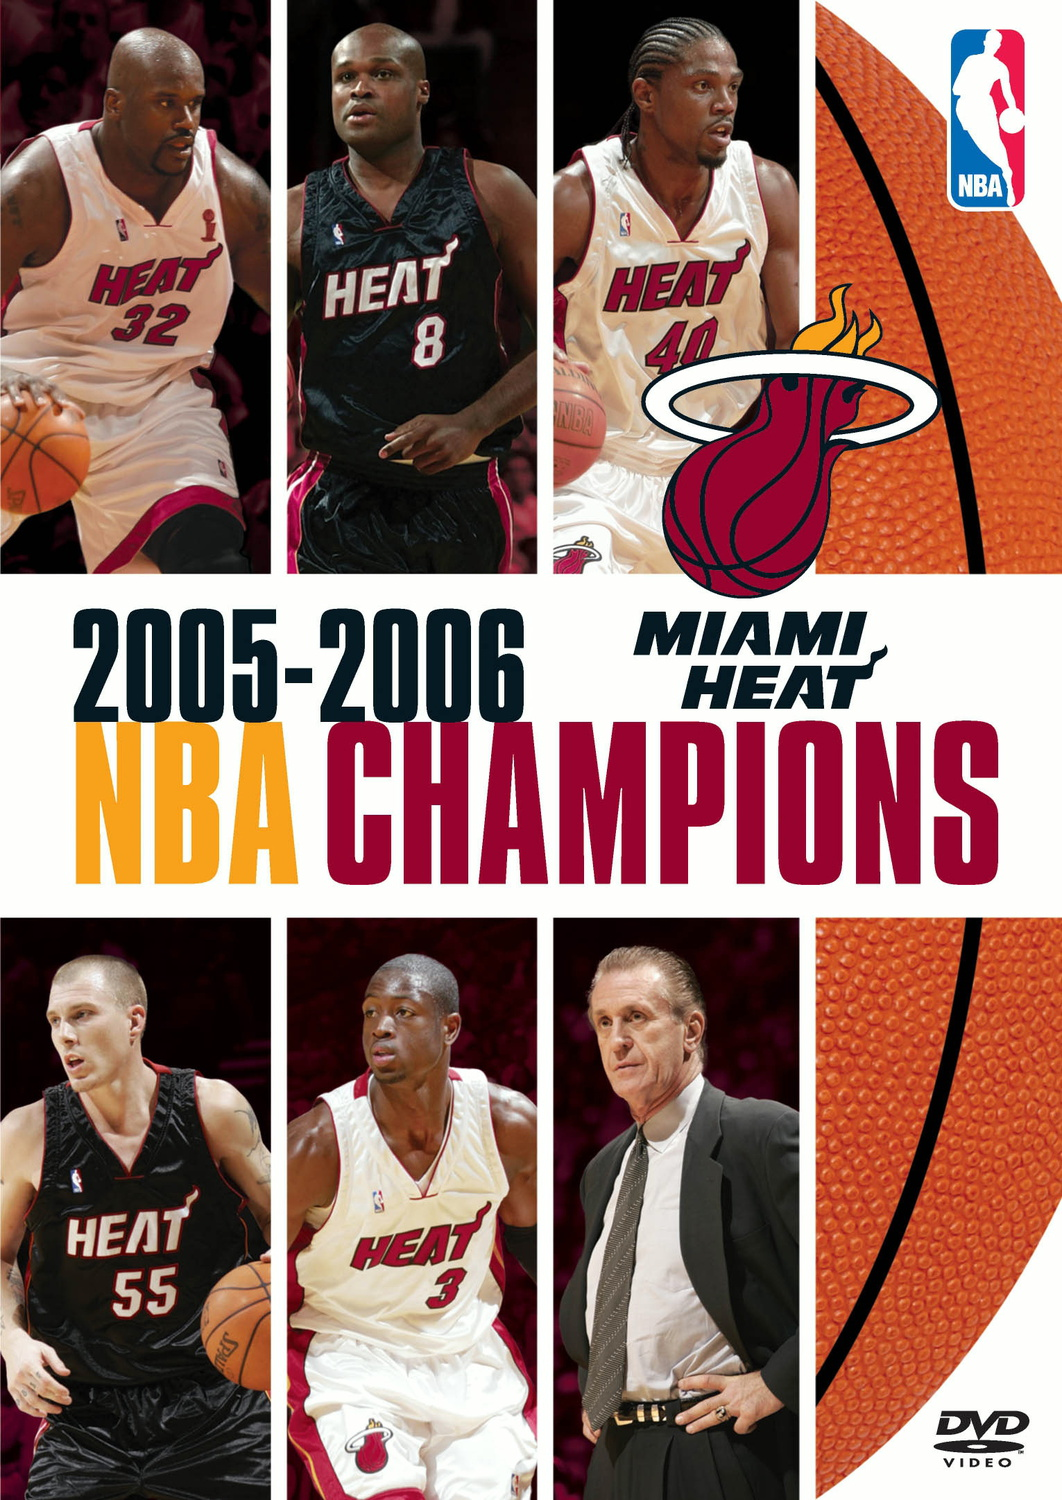 NBA Champions 2005-2006: Miami Heat